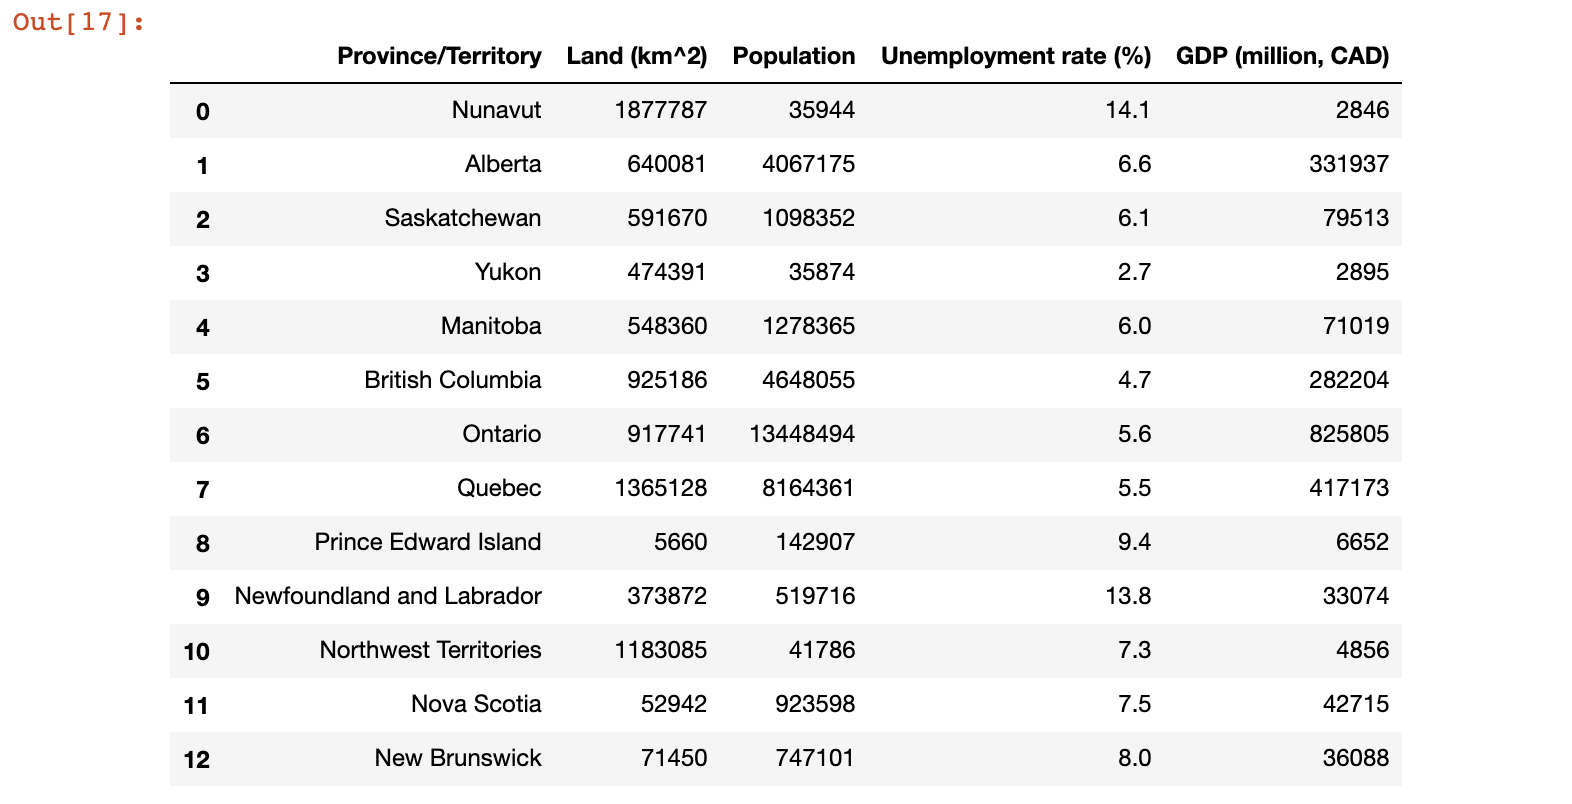 Canada DataFrame including province & territory population data rendered as a table in the Jupyter Notebook environment